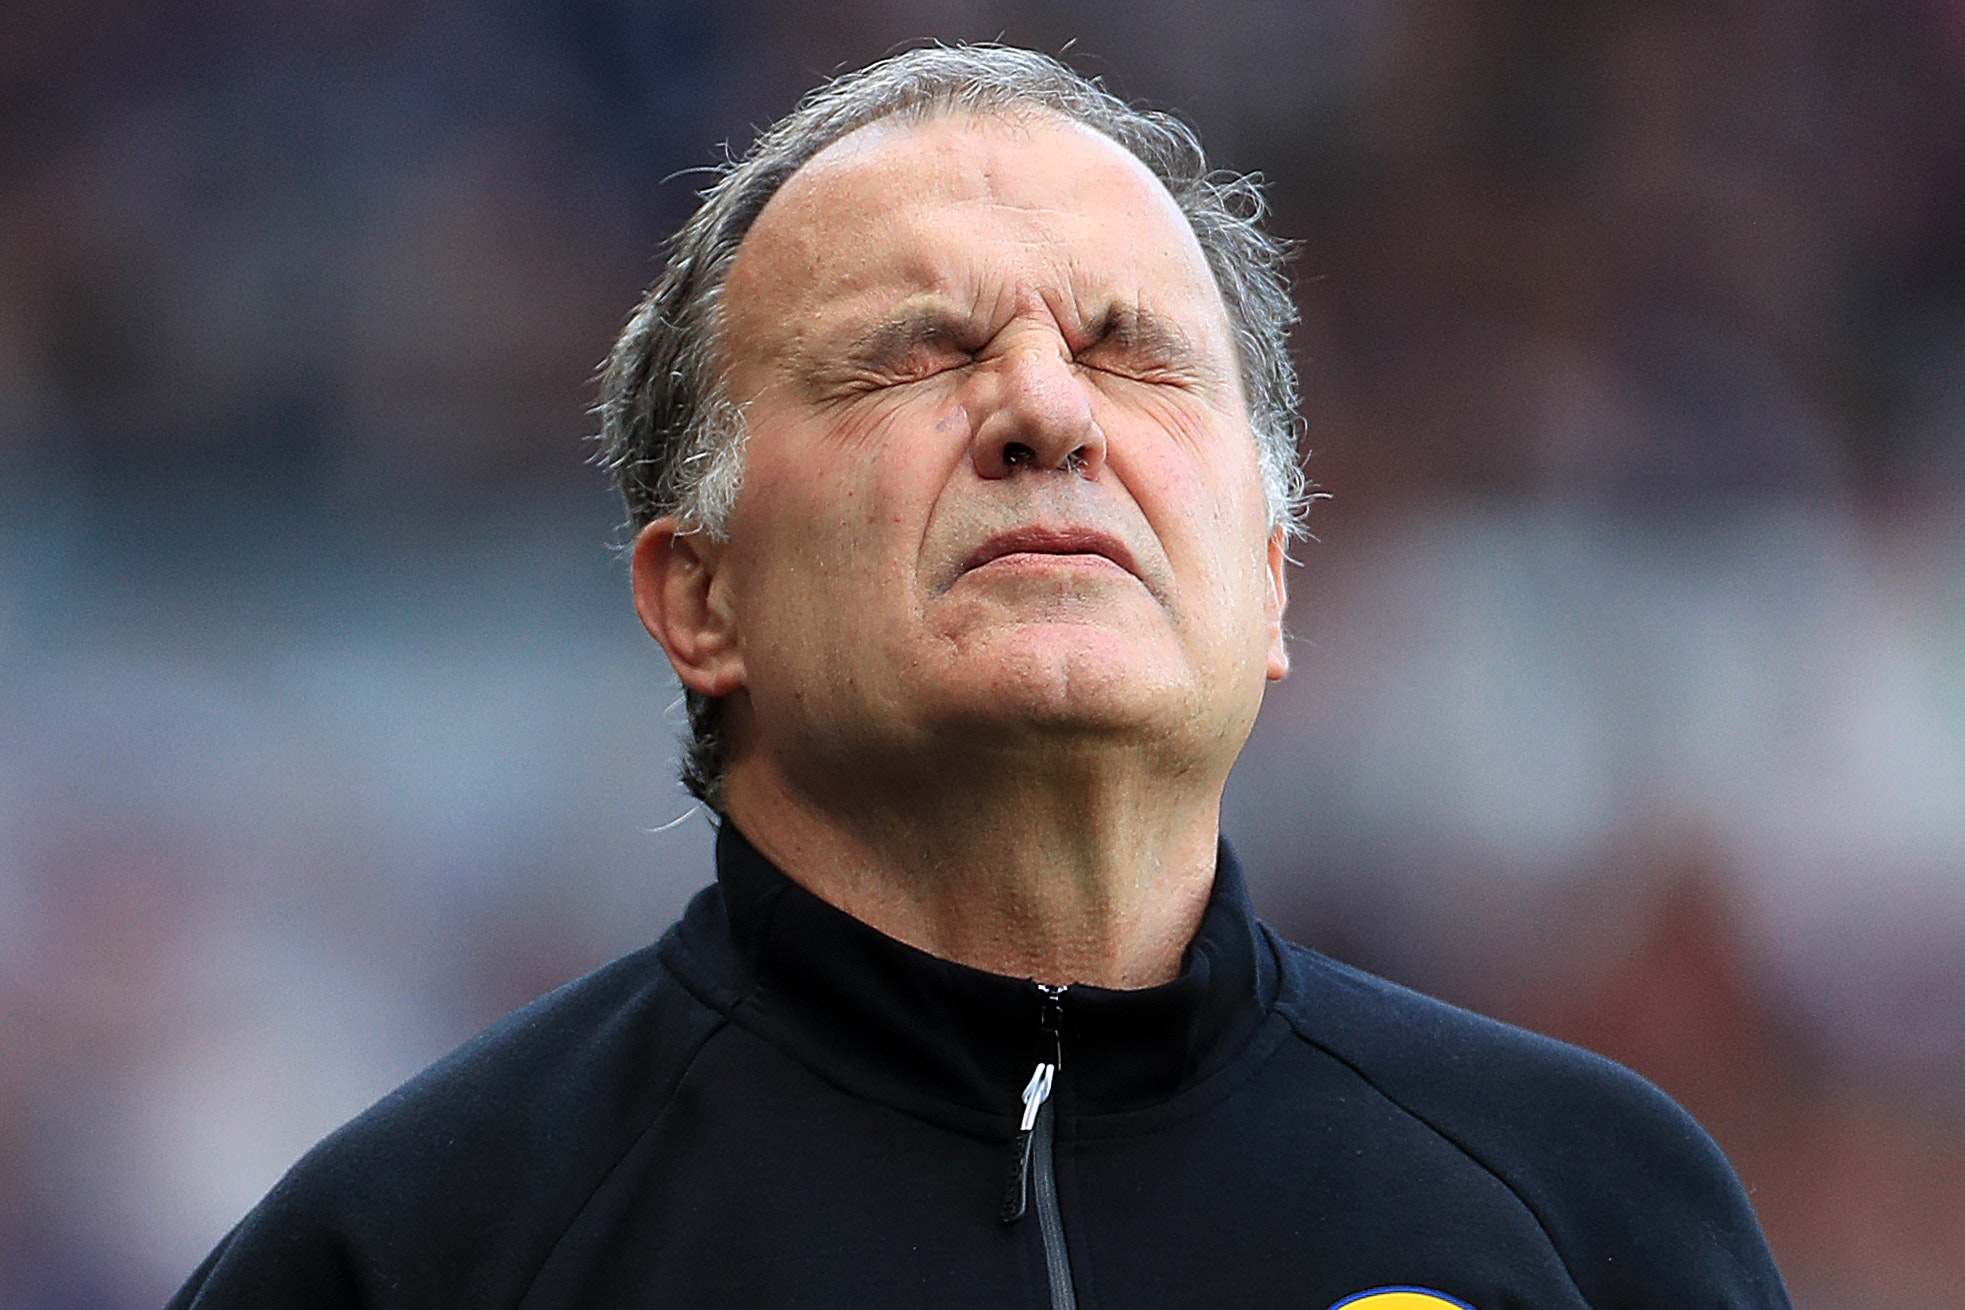 Marcelo Bielsa shows the strain during his side's play-off defeat at Elland Road